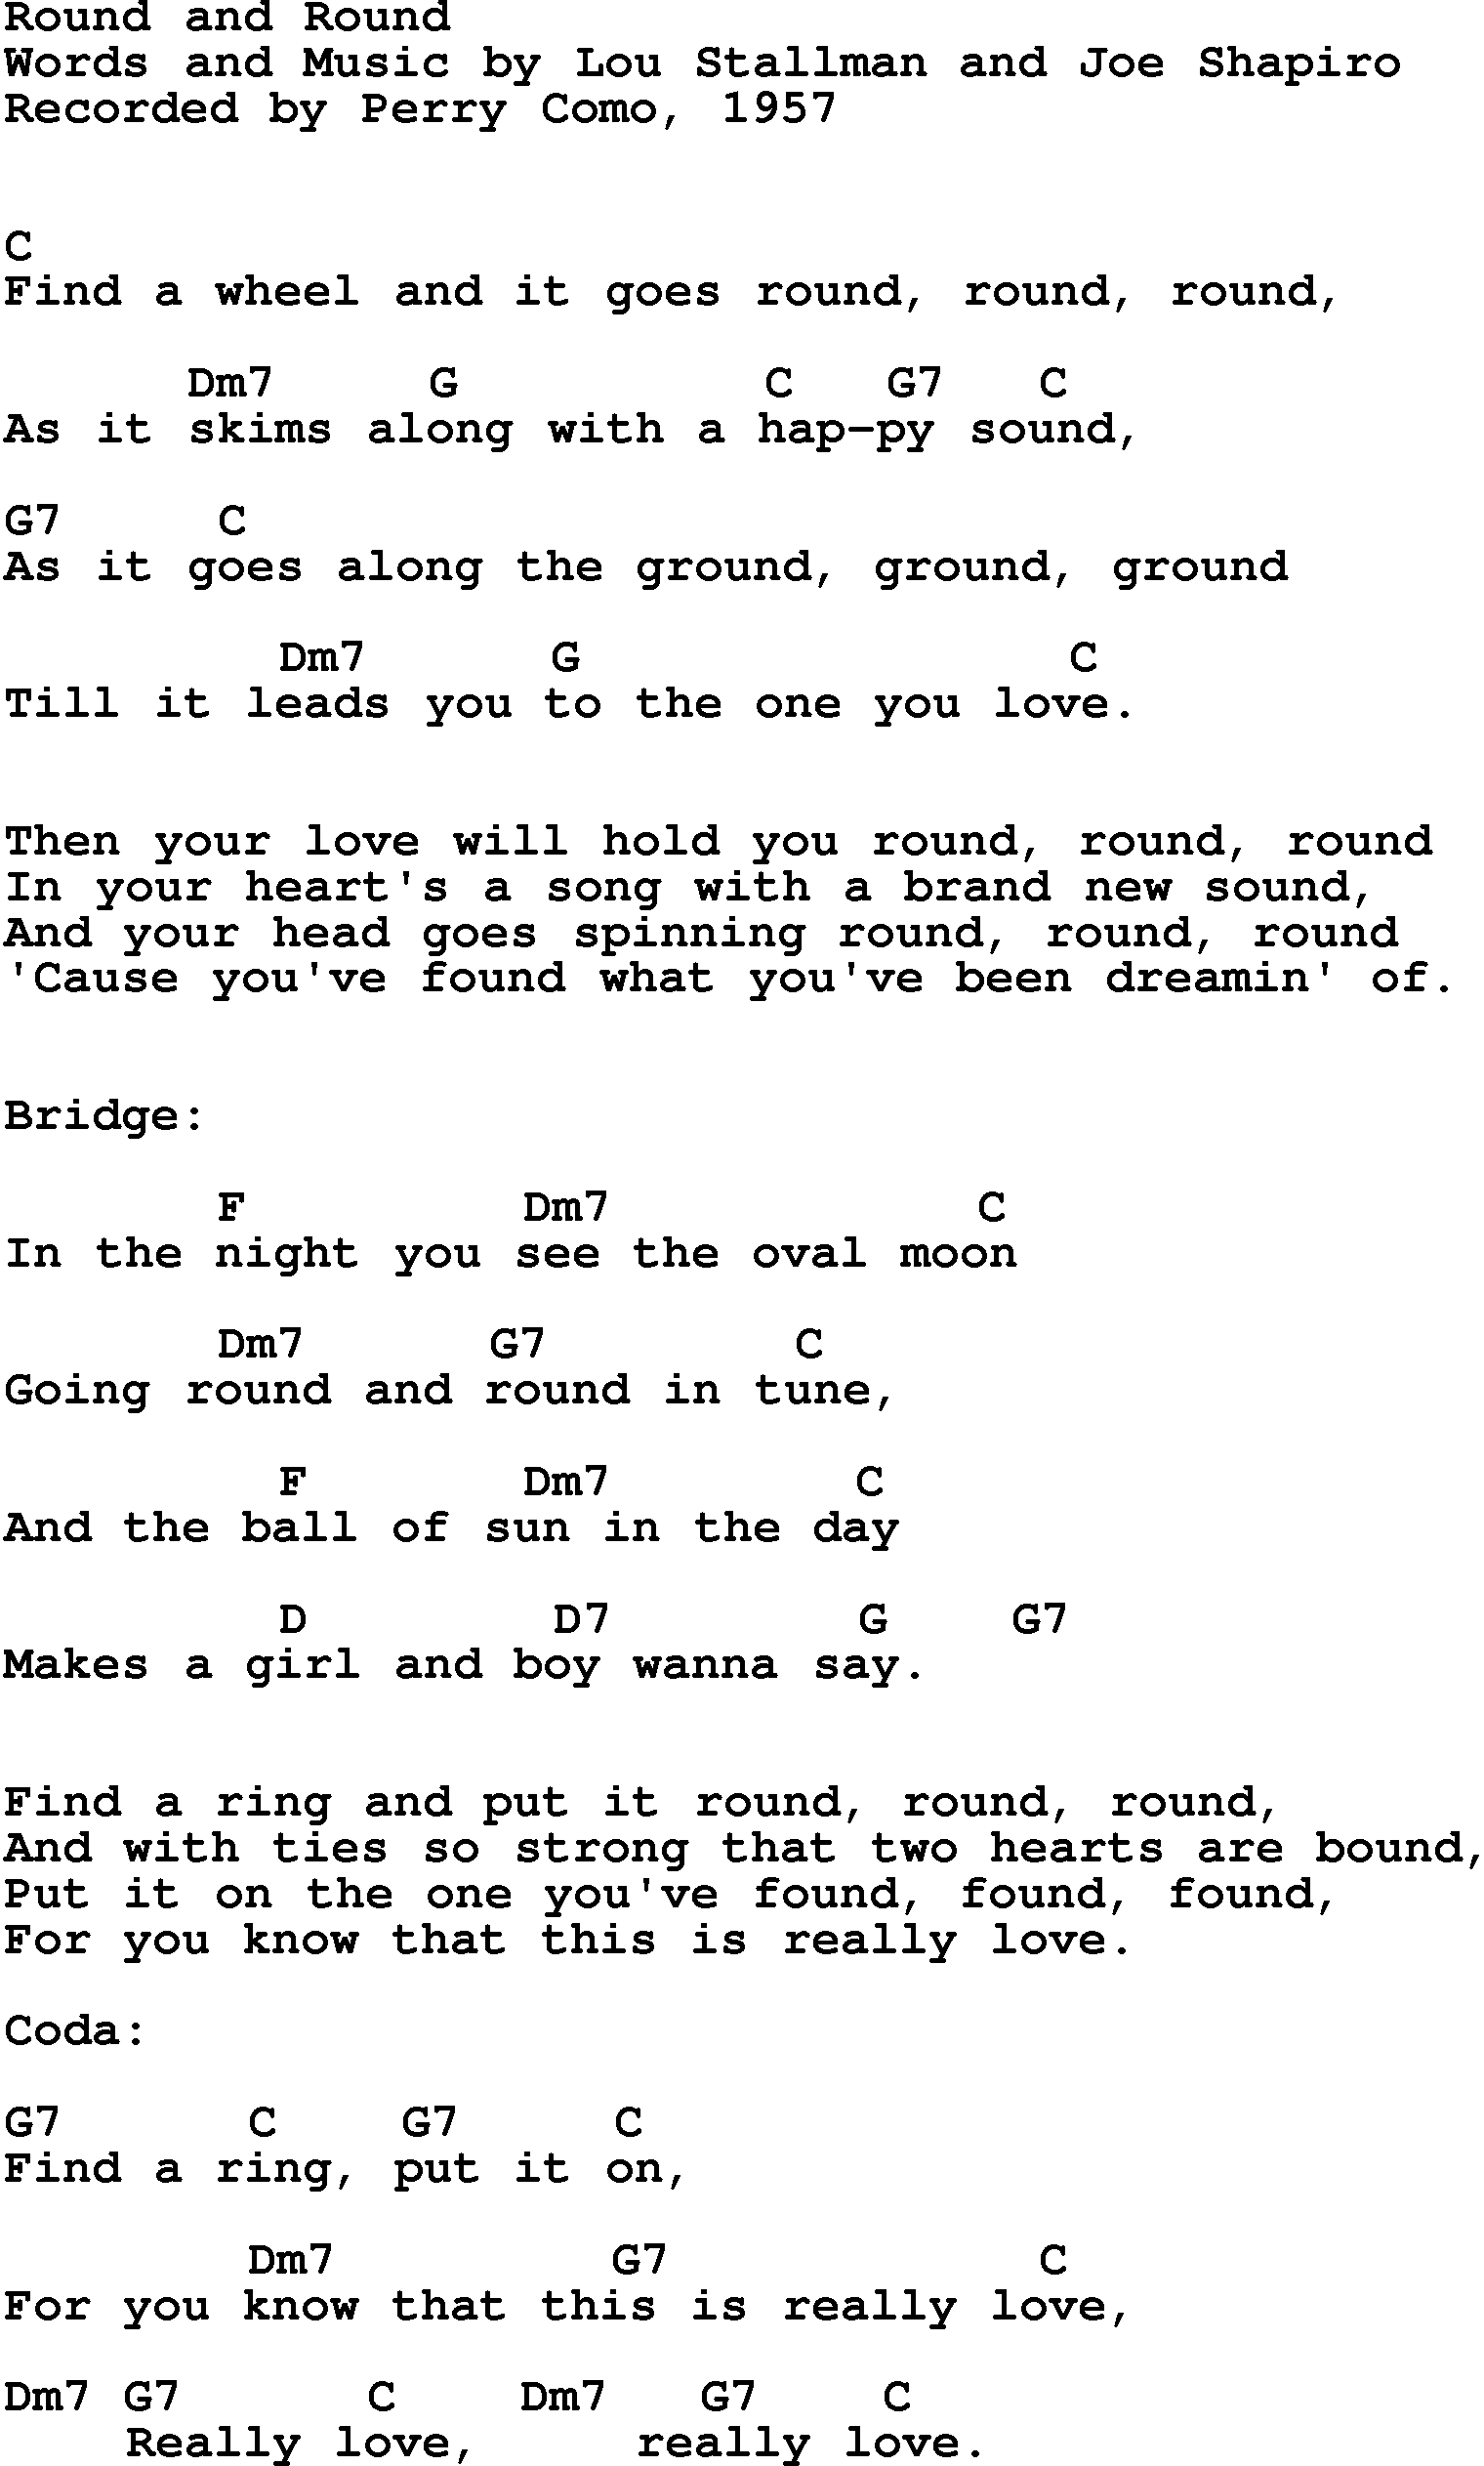 Song lyrics with guitar chords for Round And Round - Perry